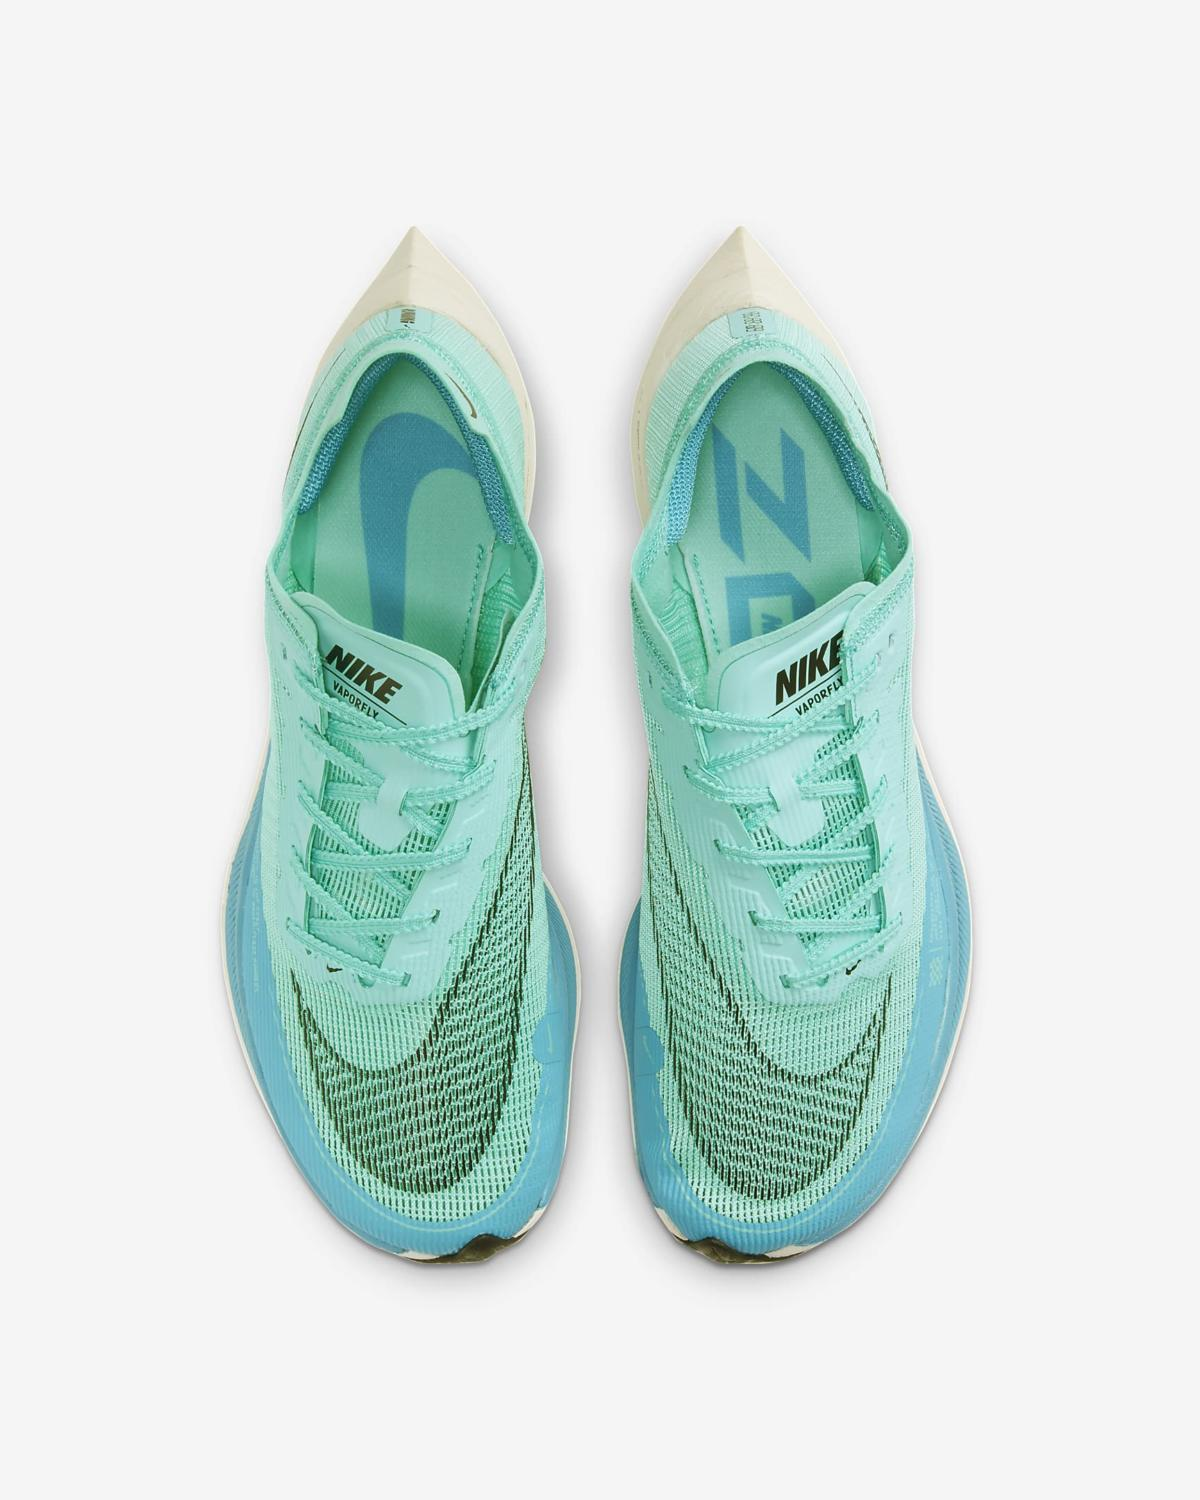 zoomx-vaporfly-next-2-racing-shoe-D4ntS0 (2)